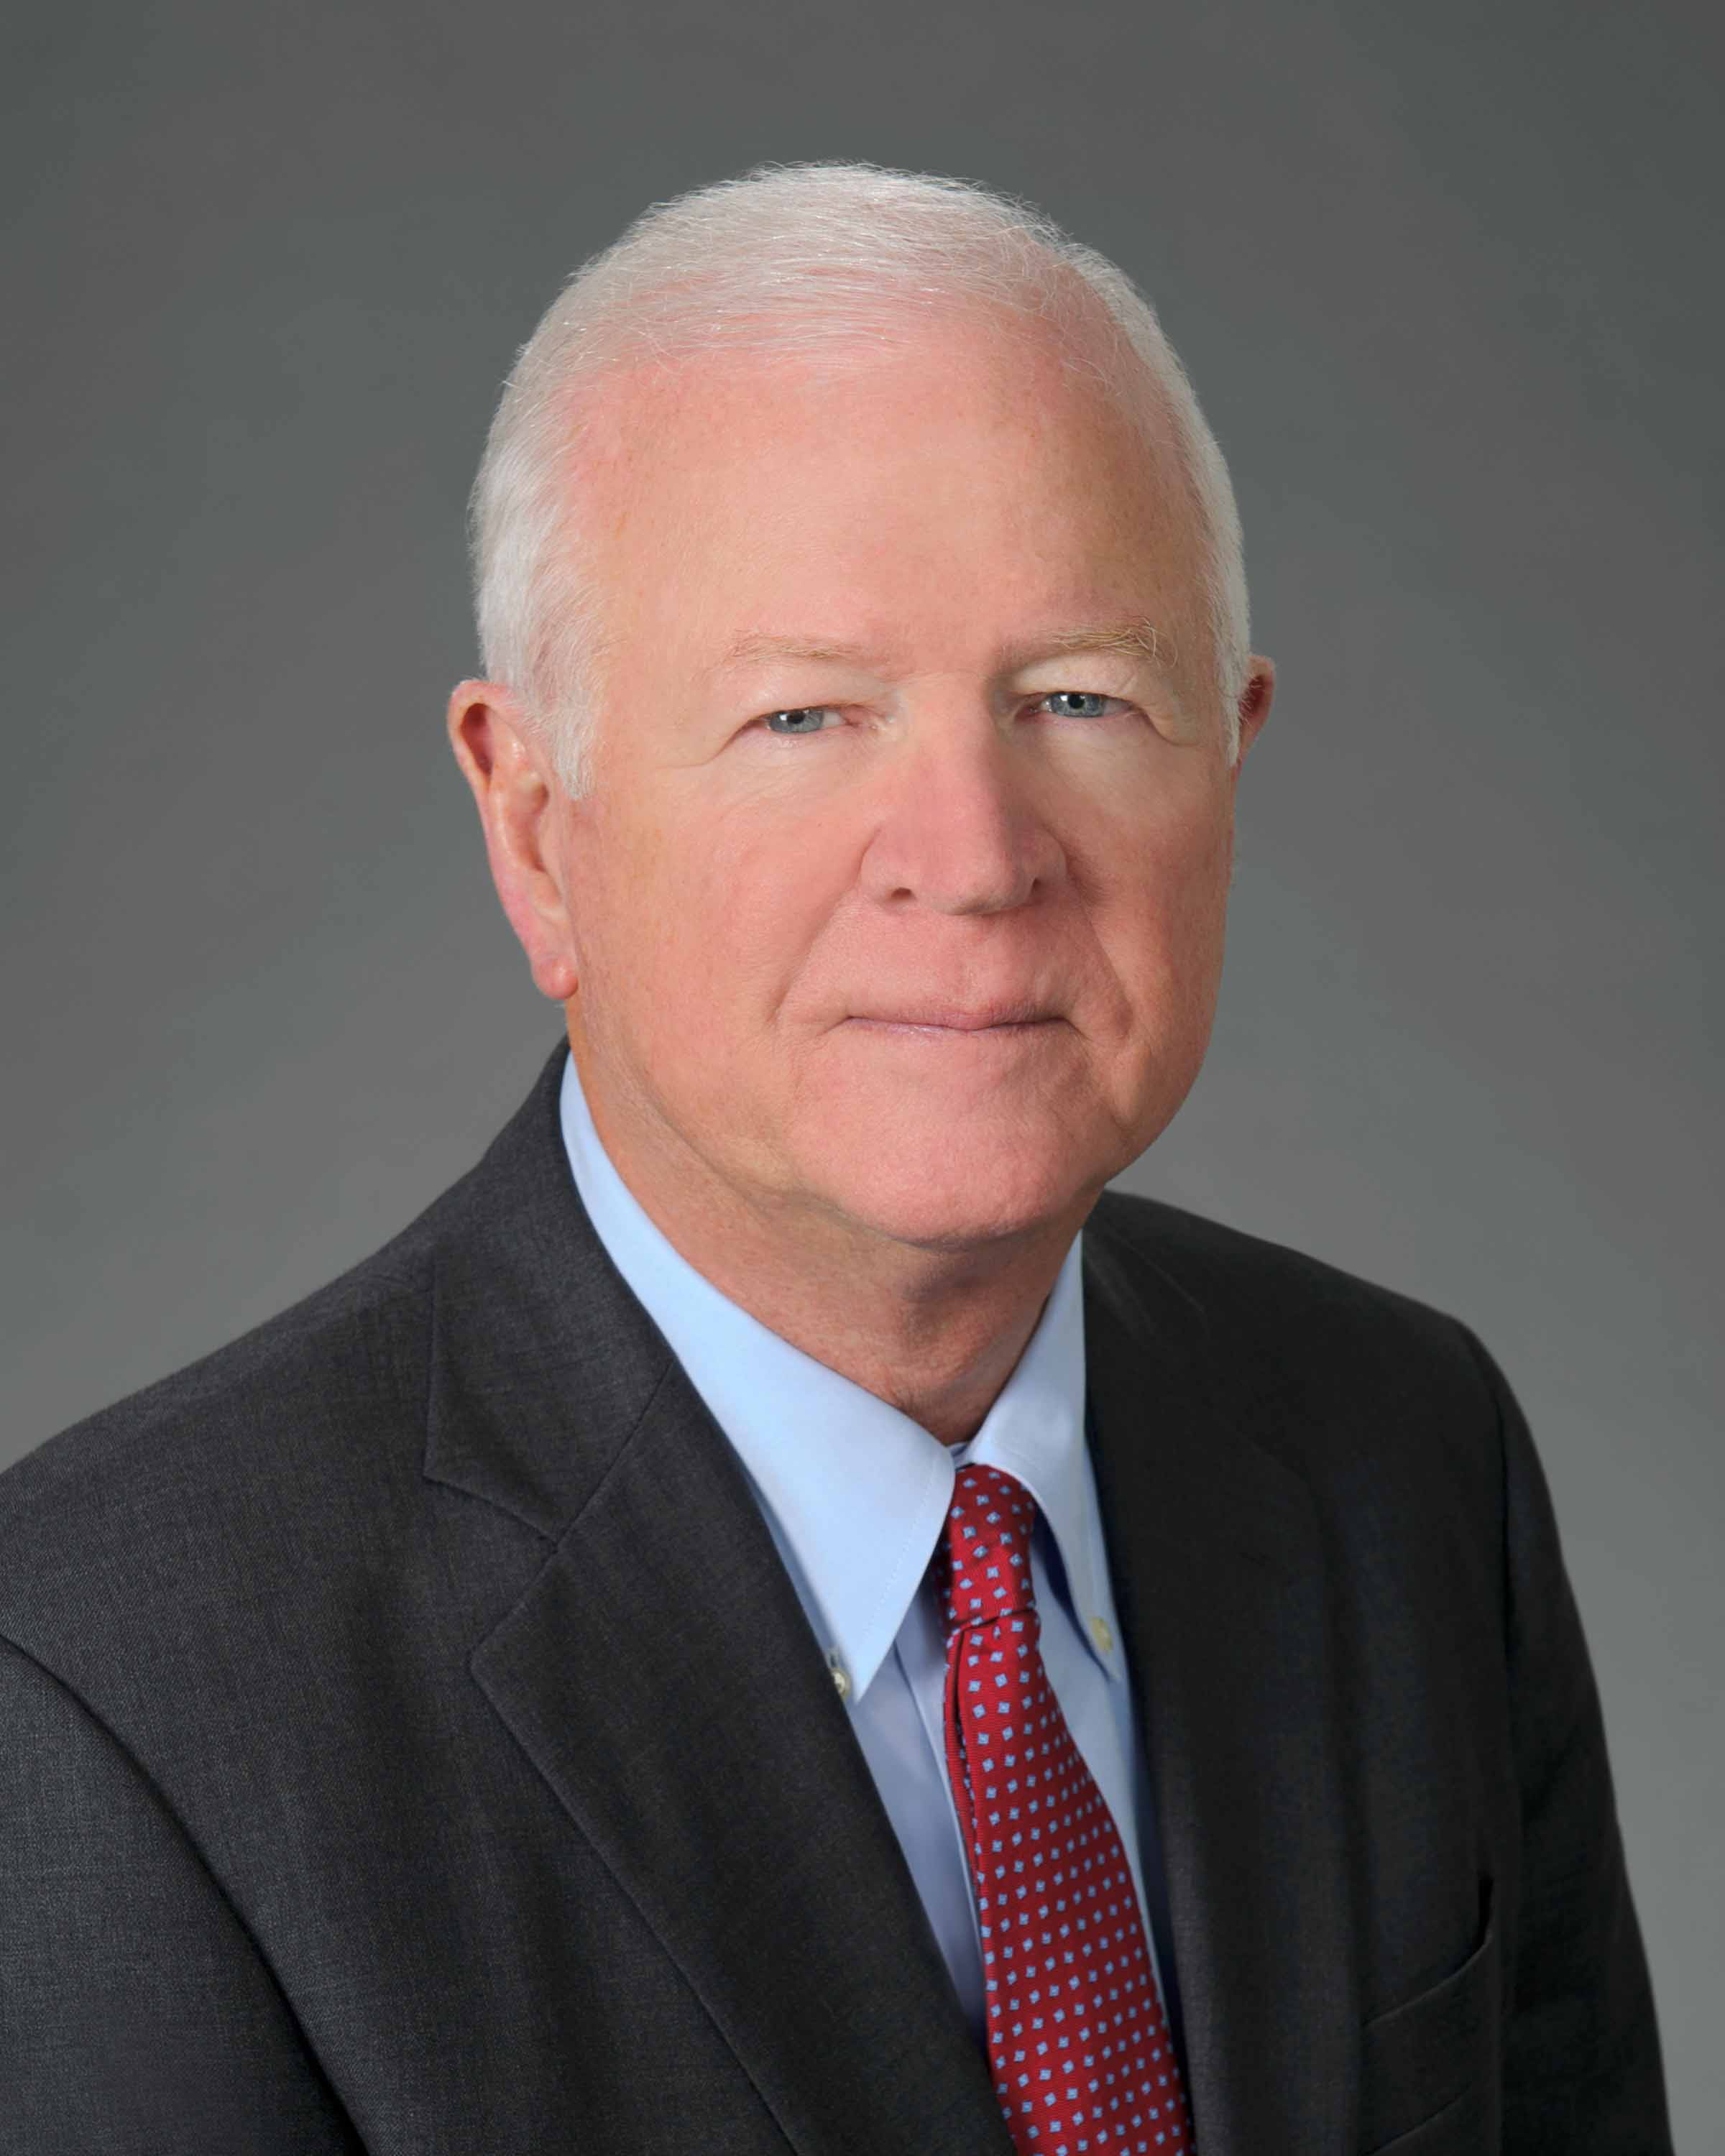 Sen. Saxby Chambliss will be inducted into the Georgia Agricultural Hall of Fame on Sept. 25 in Athens, Georgai.